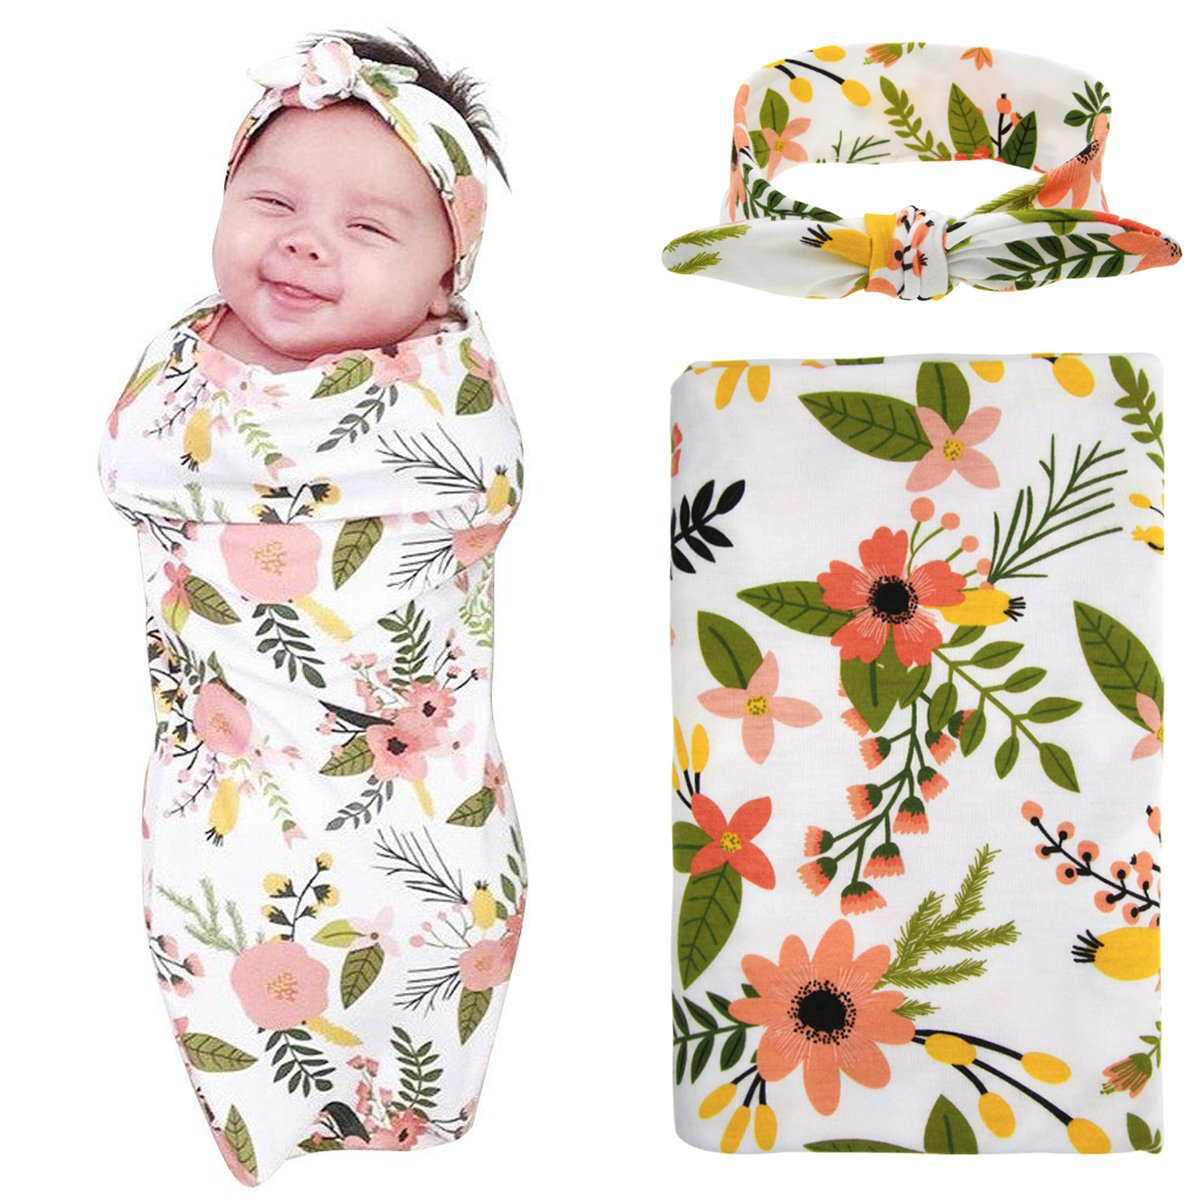 Photo Prop Swaddle Blanket and Hat Newborn Baby Shower Gift Floral Swaddle Set Newborn Girl Orange Rose Swaddle Set Neutral Swaddle Set